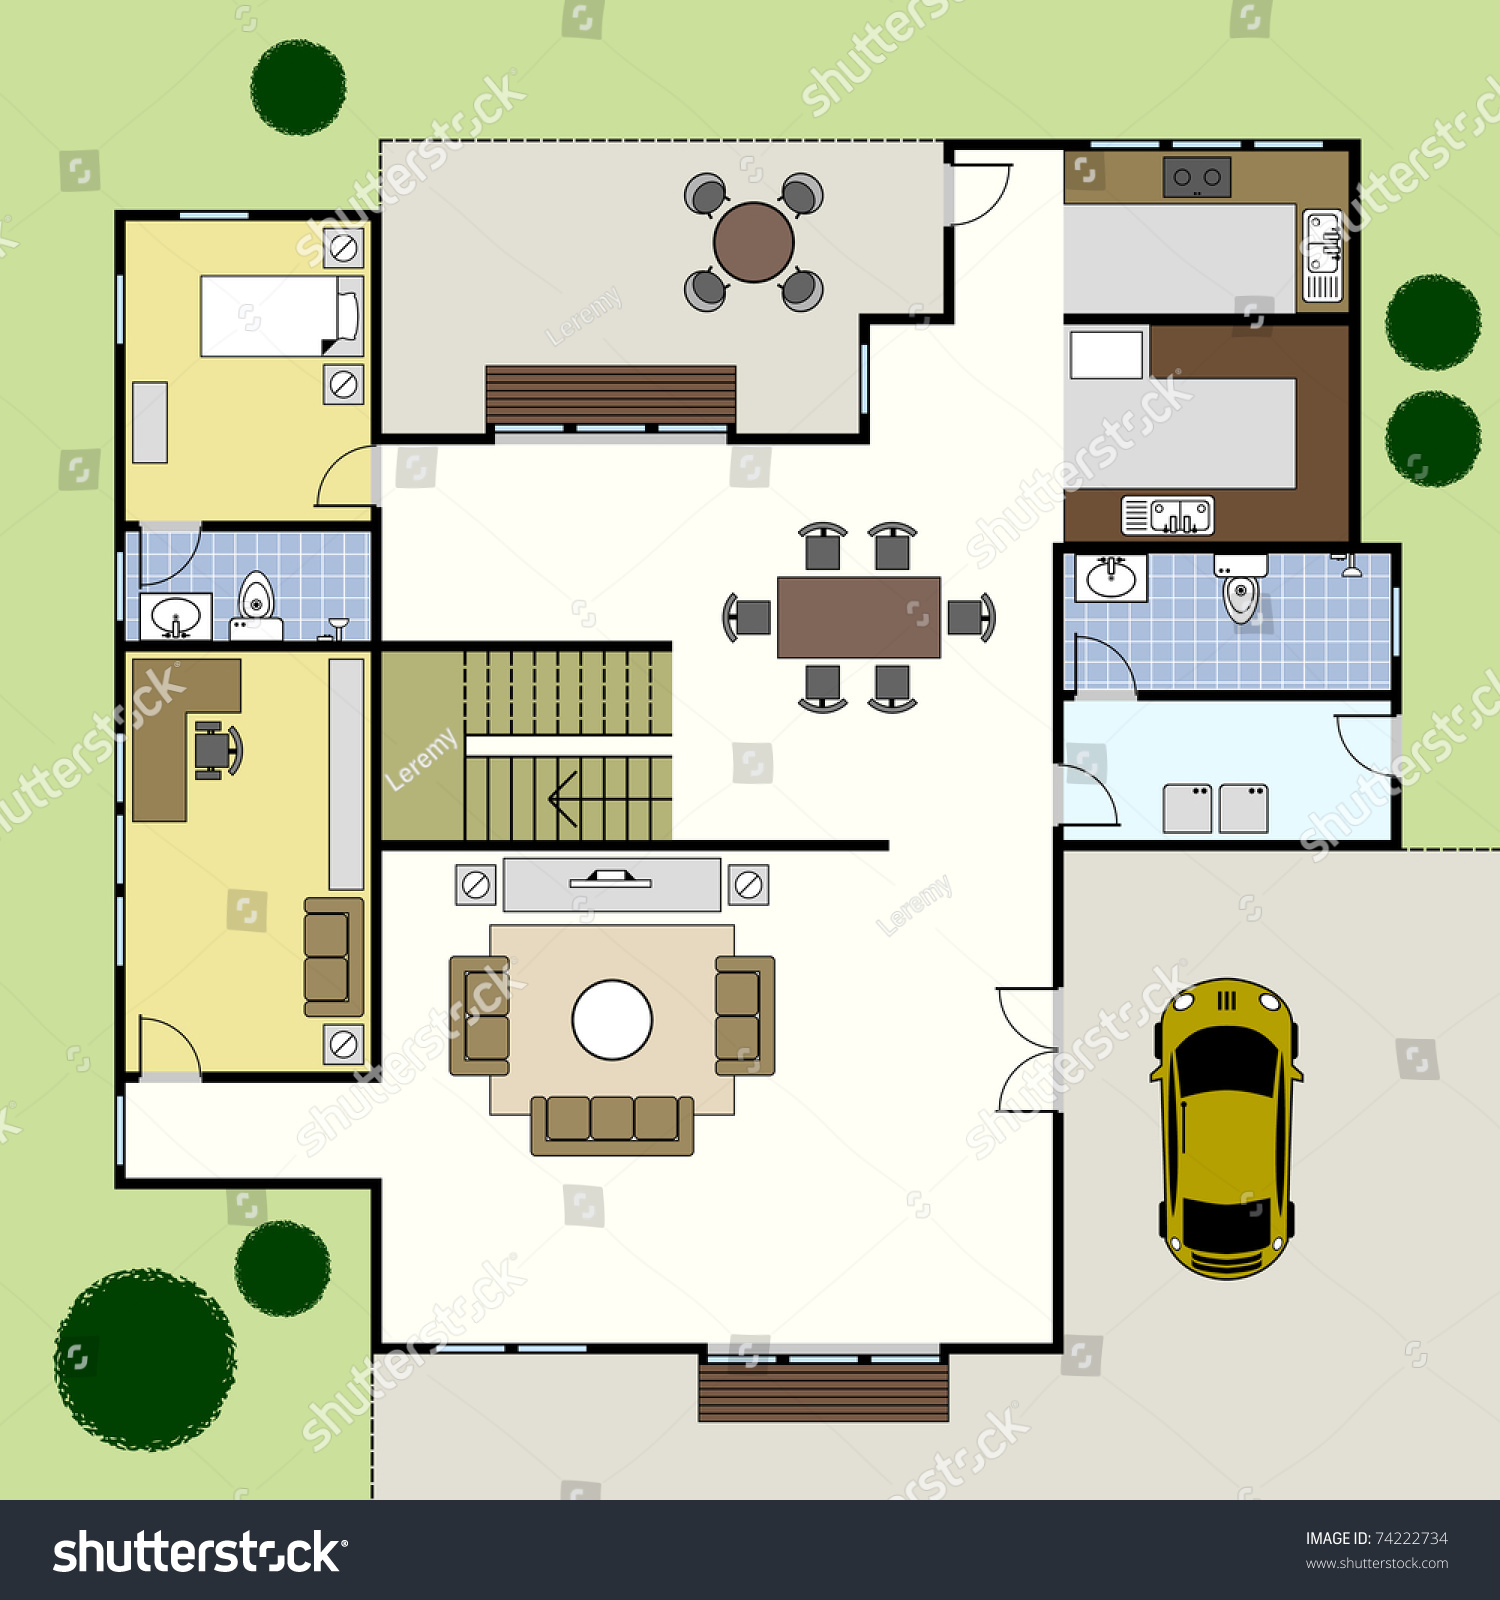 Ground floor plan floorplan house home stock vector 74222734 shutterstock - Lay outs grond helling ...